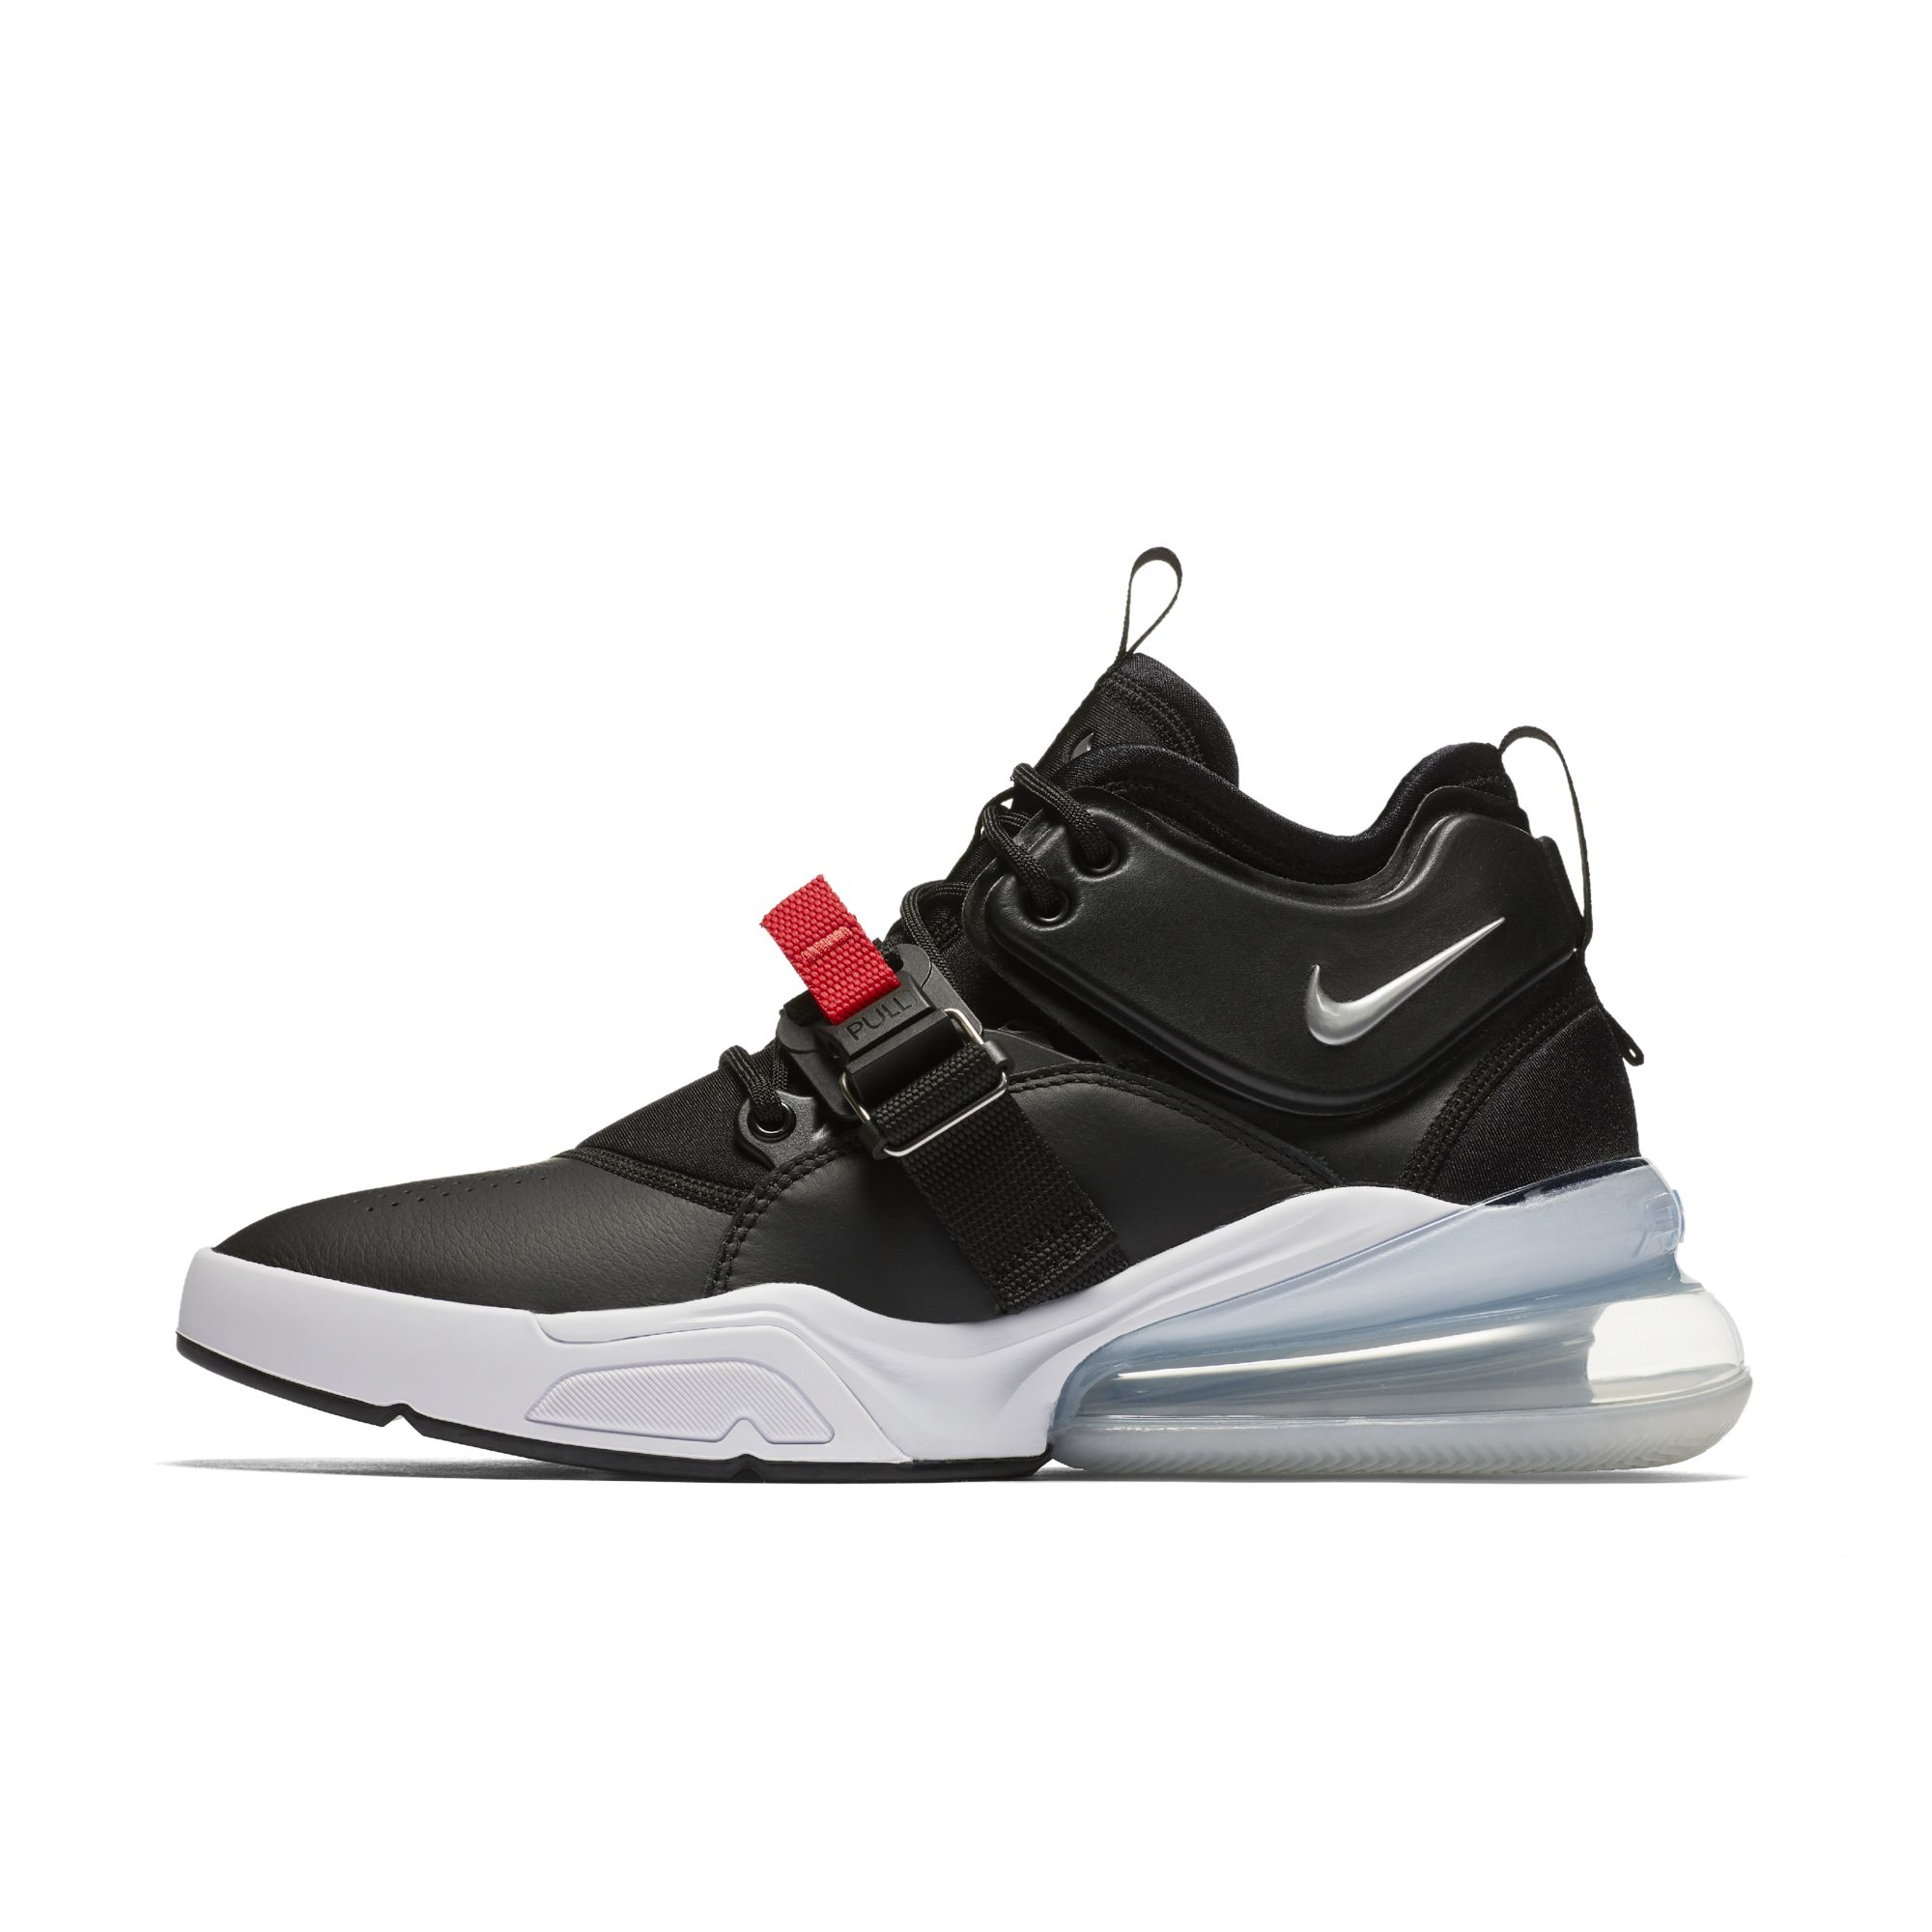 outlet store a4be3 3846b A Clean Colorway of the Nike Air Force 270 Drops Next Week ...